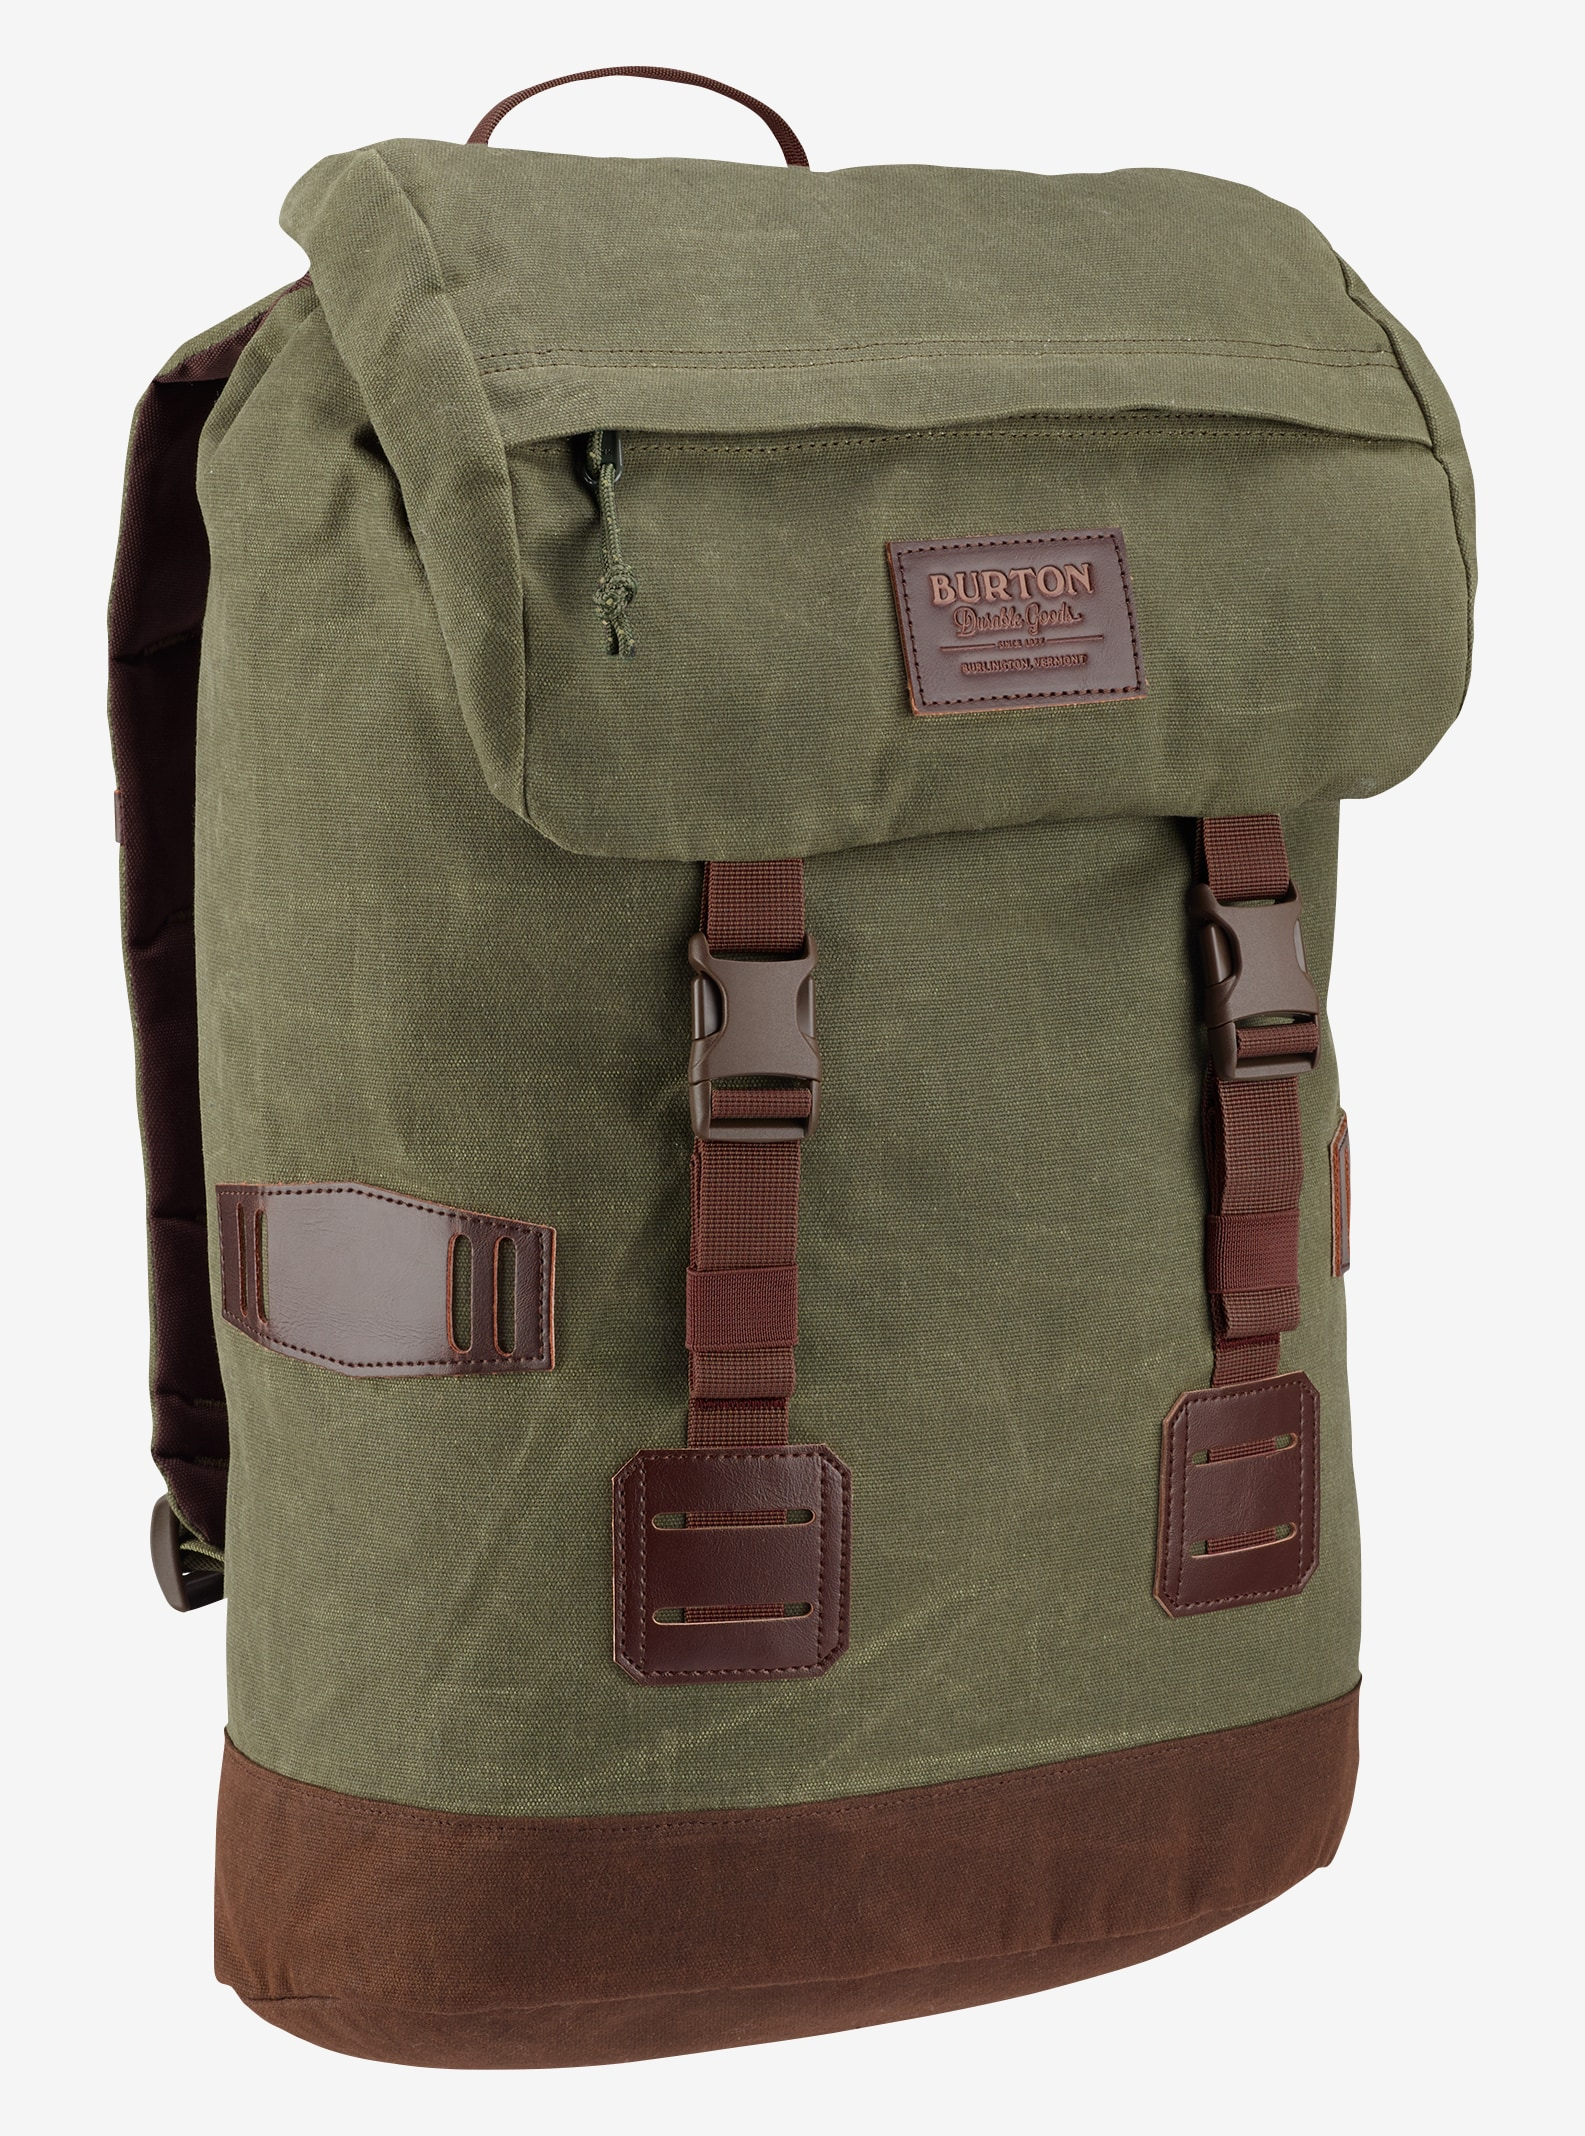 Burton Tinder Backpack shown in Forest Night Waxed Canvas